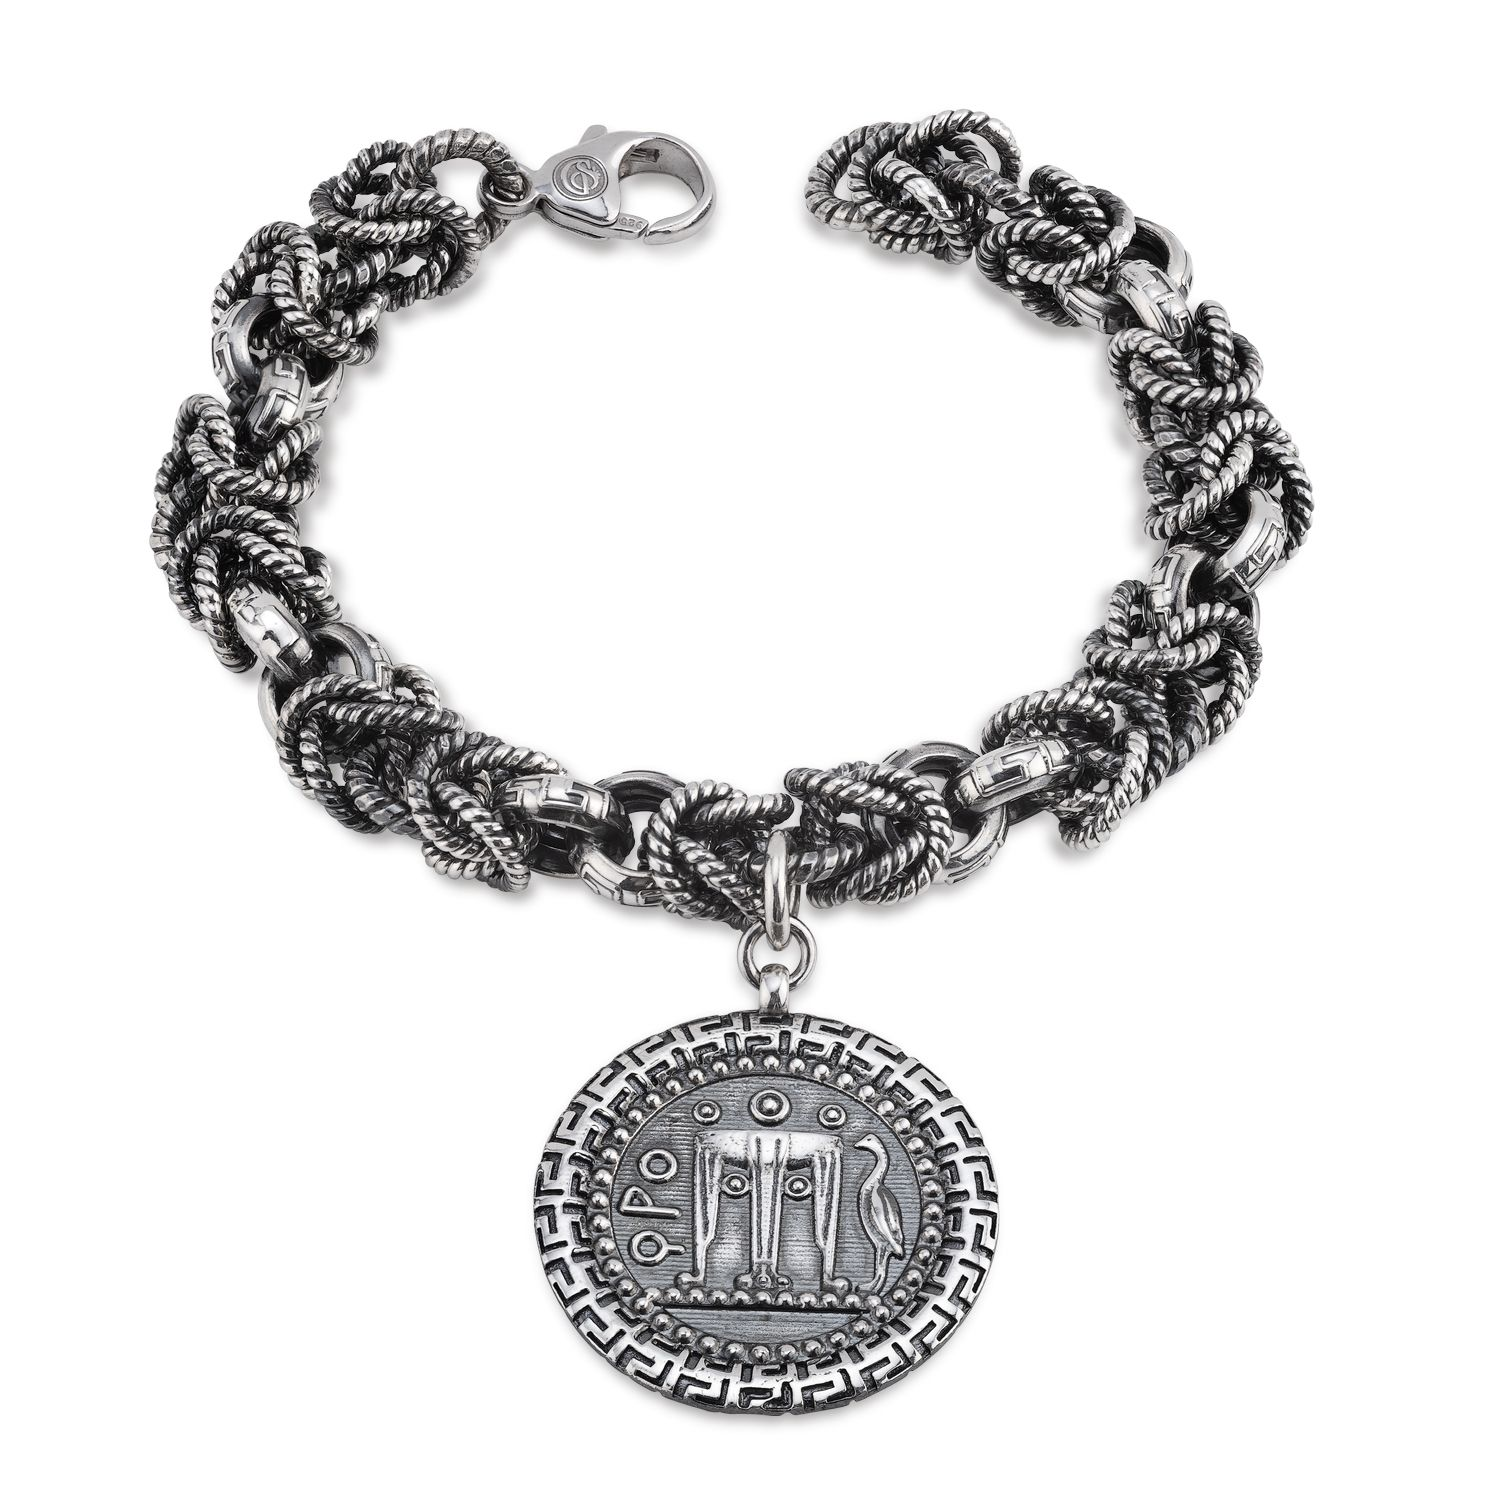 Burnished Silver Bracelet with Coin (33689)